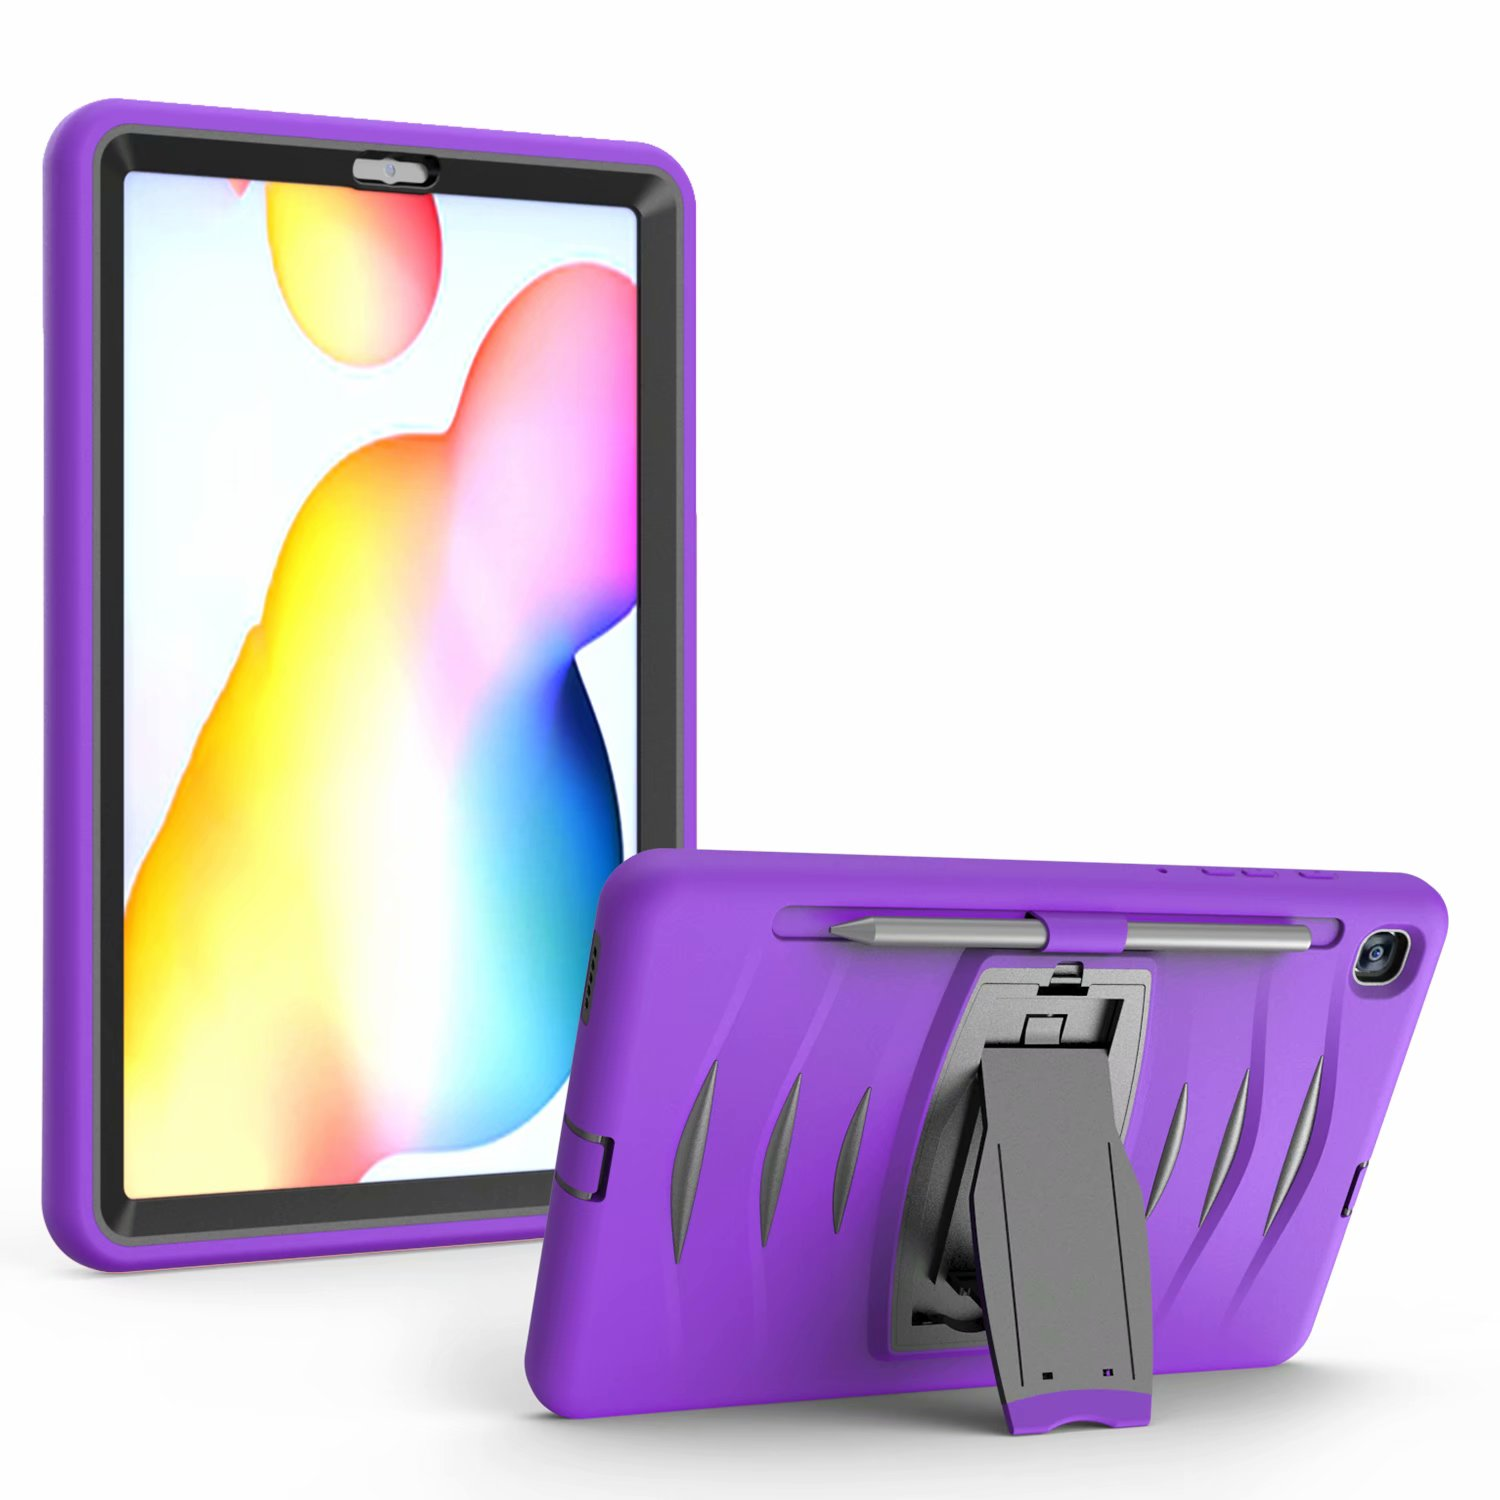 Huawei MediaPad M5 10.8 Case Premium PU Leather Book Style Folding Hand Strap Case with Kickstand Cover Card Slots Full Protection Shell Bummper for Huawei MediaPad M5 10.8 Tablet purple